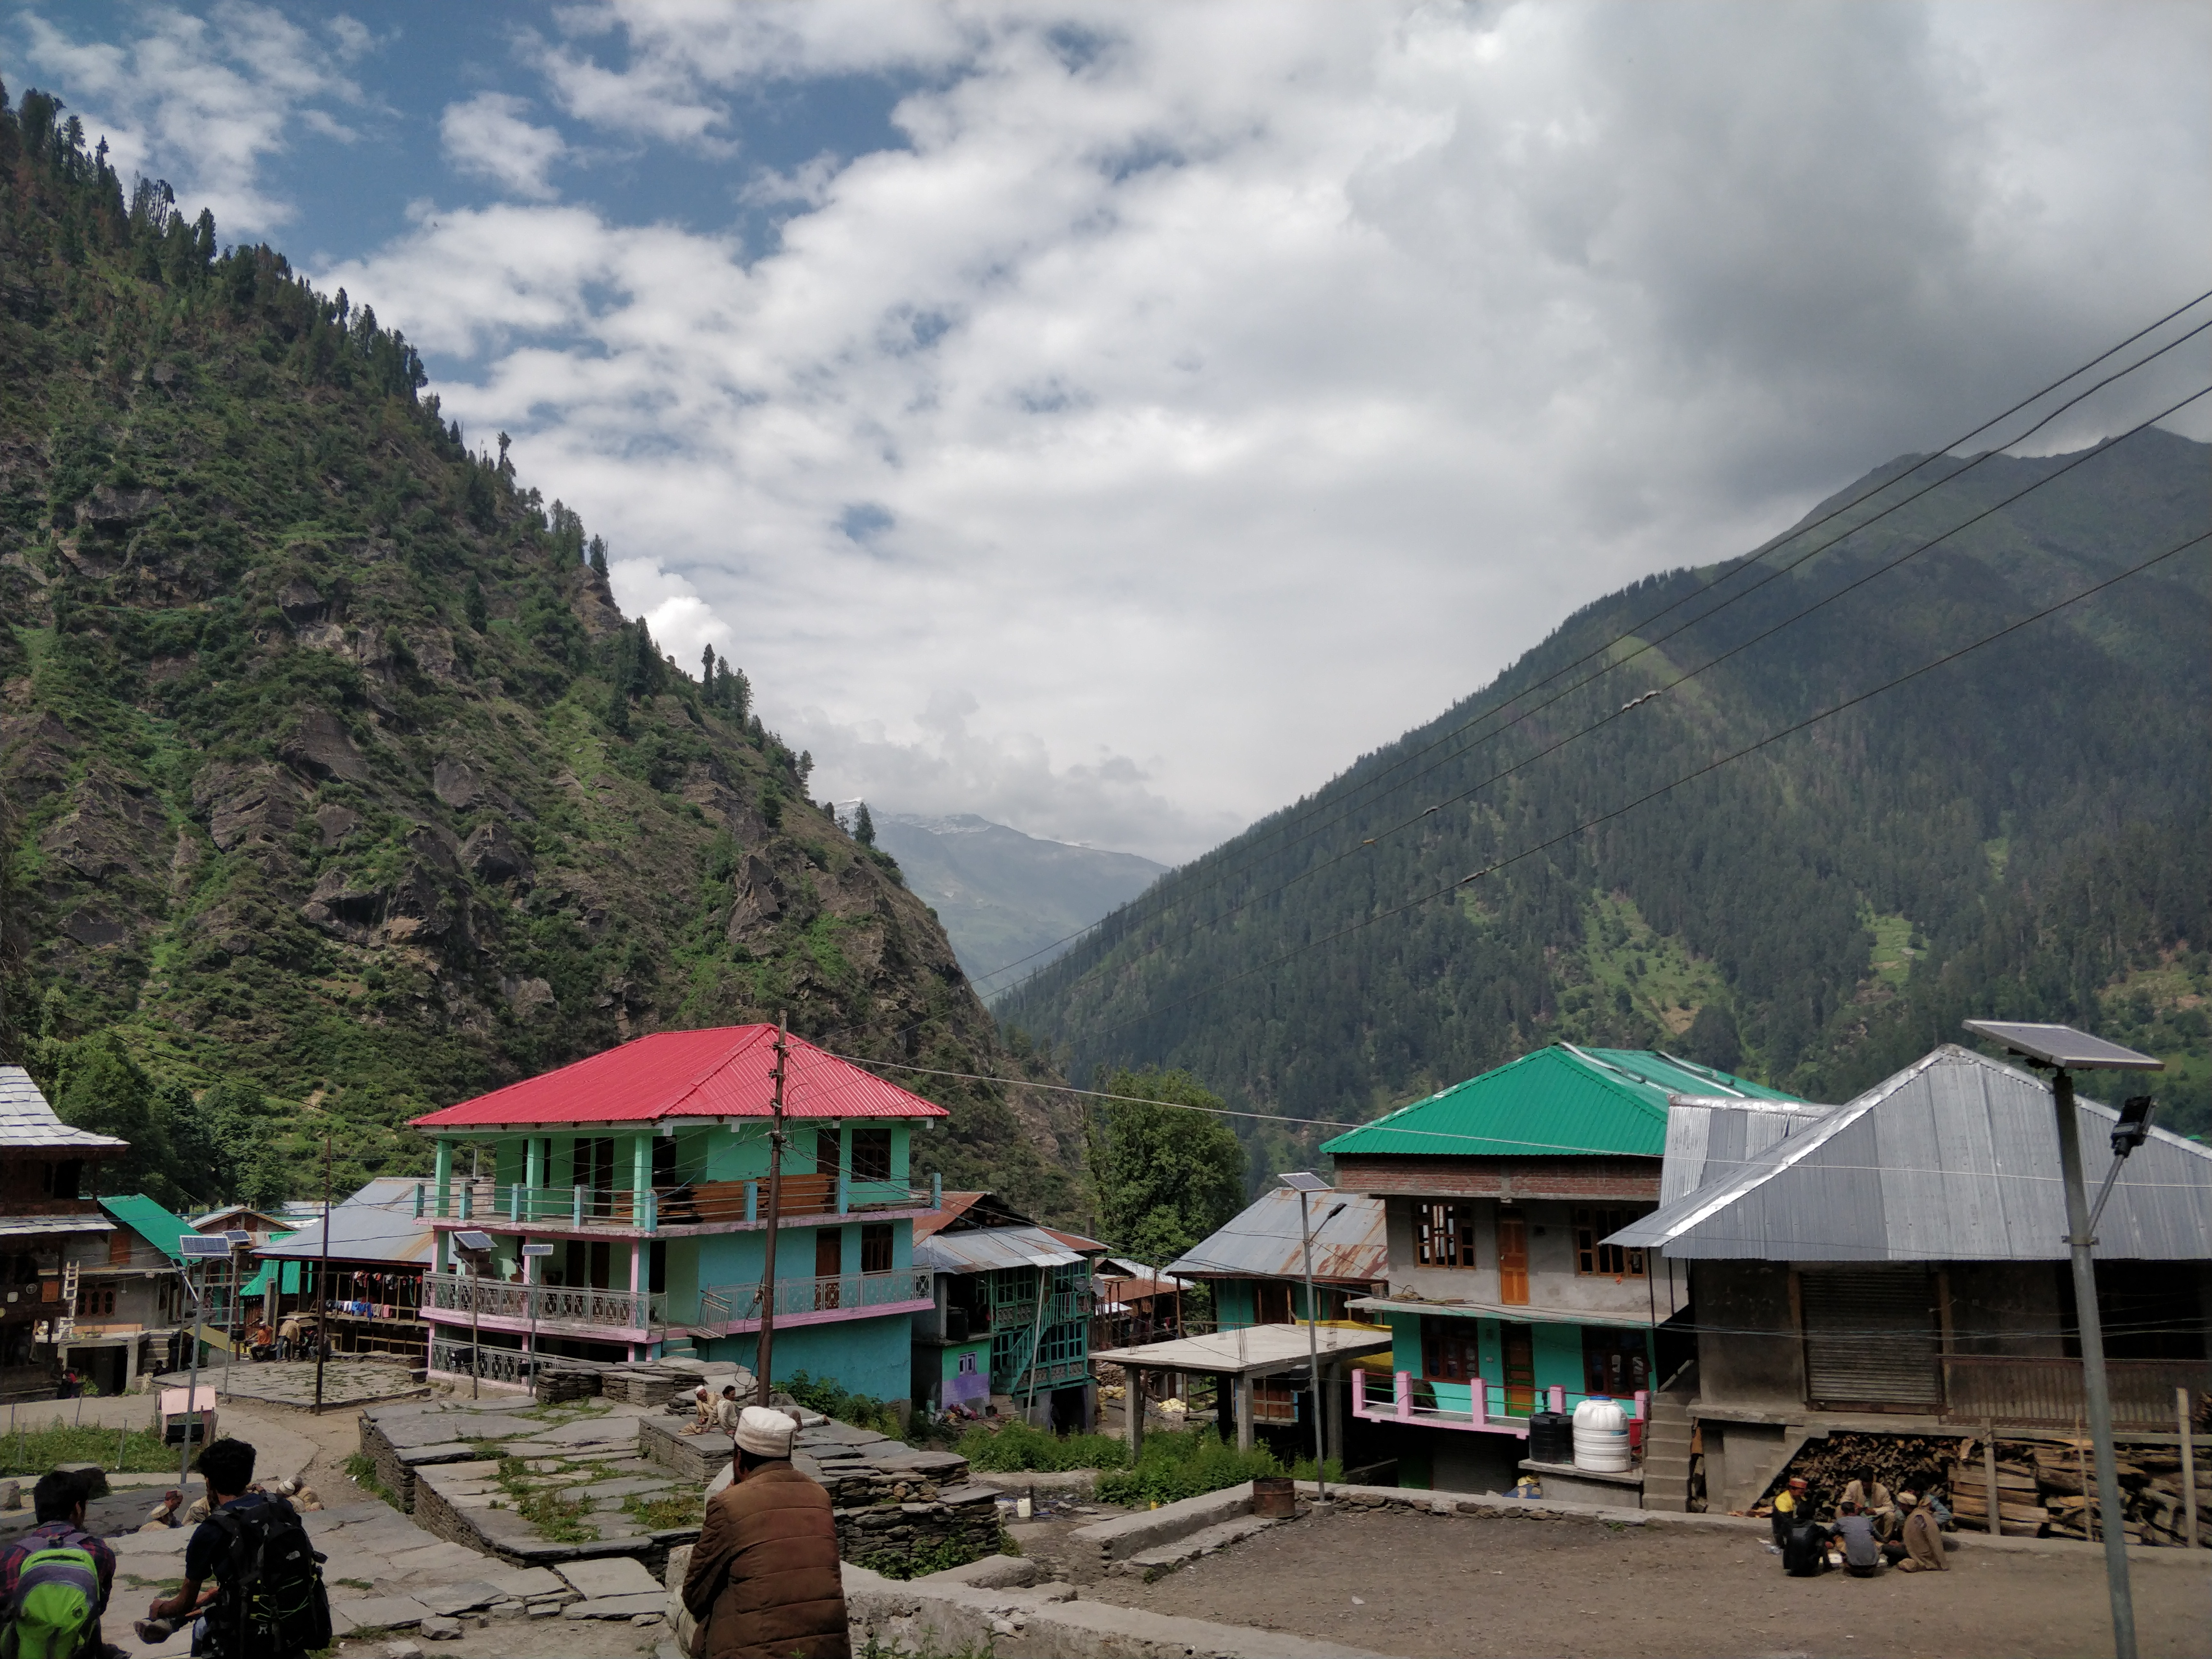 View of Malana villagein Himachal Pradesh, India; showing the local houses and residents.